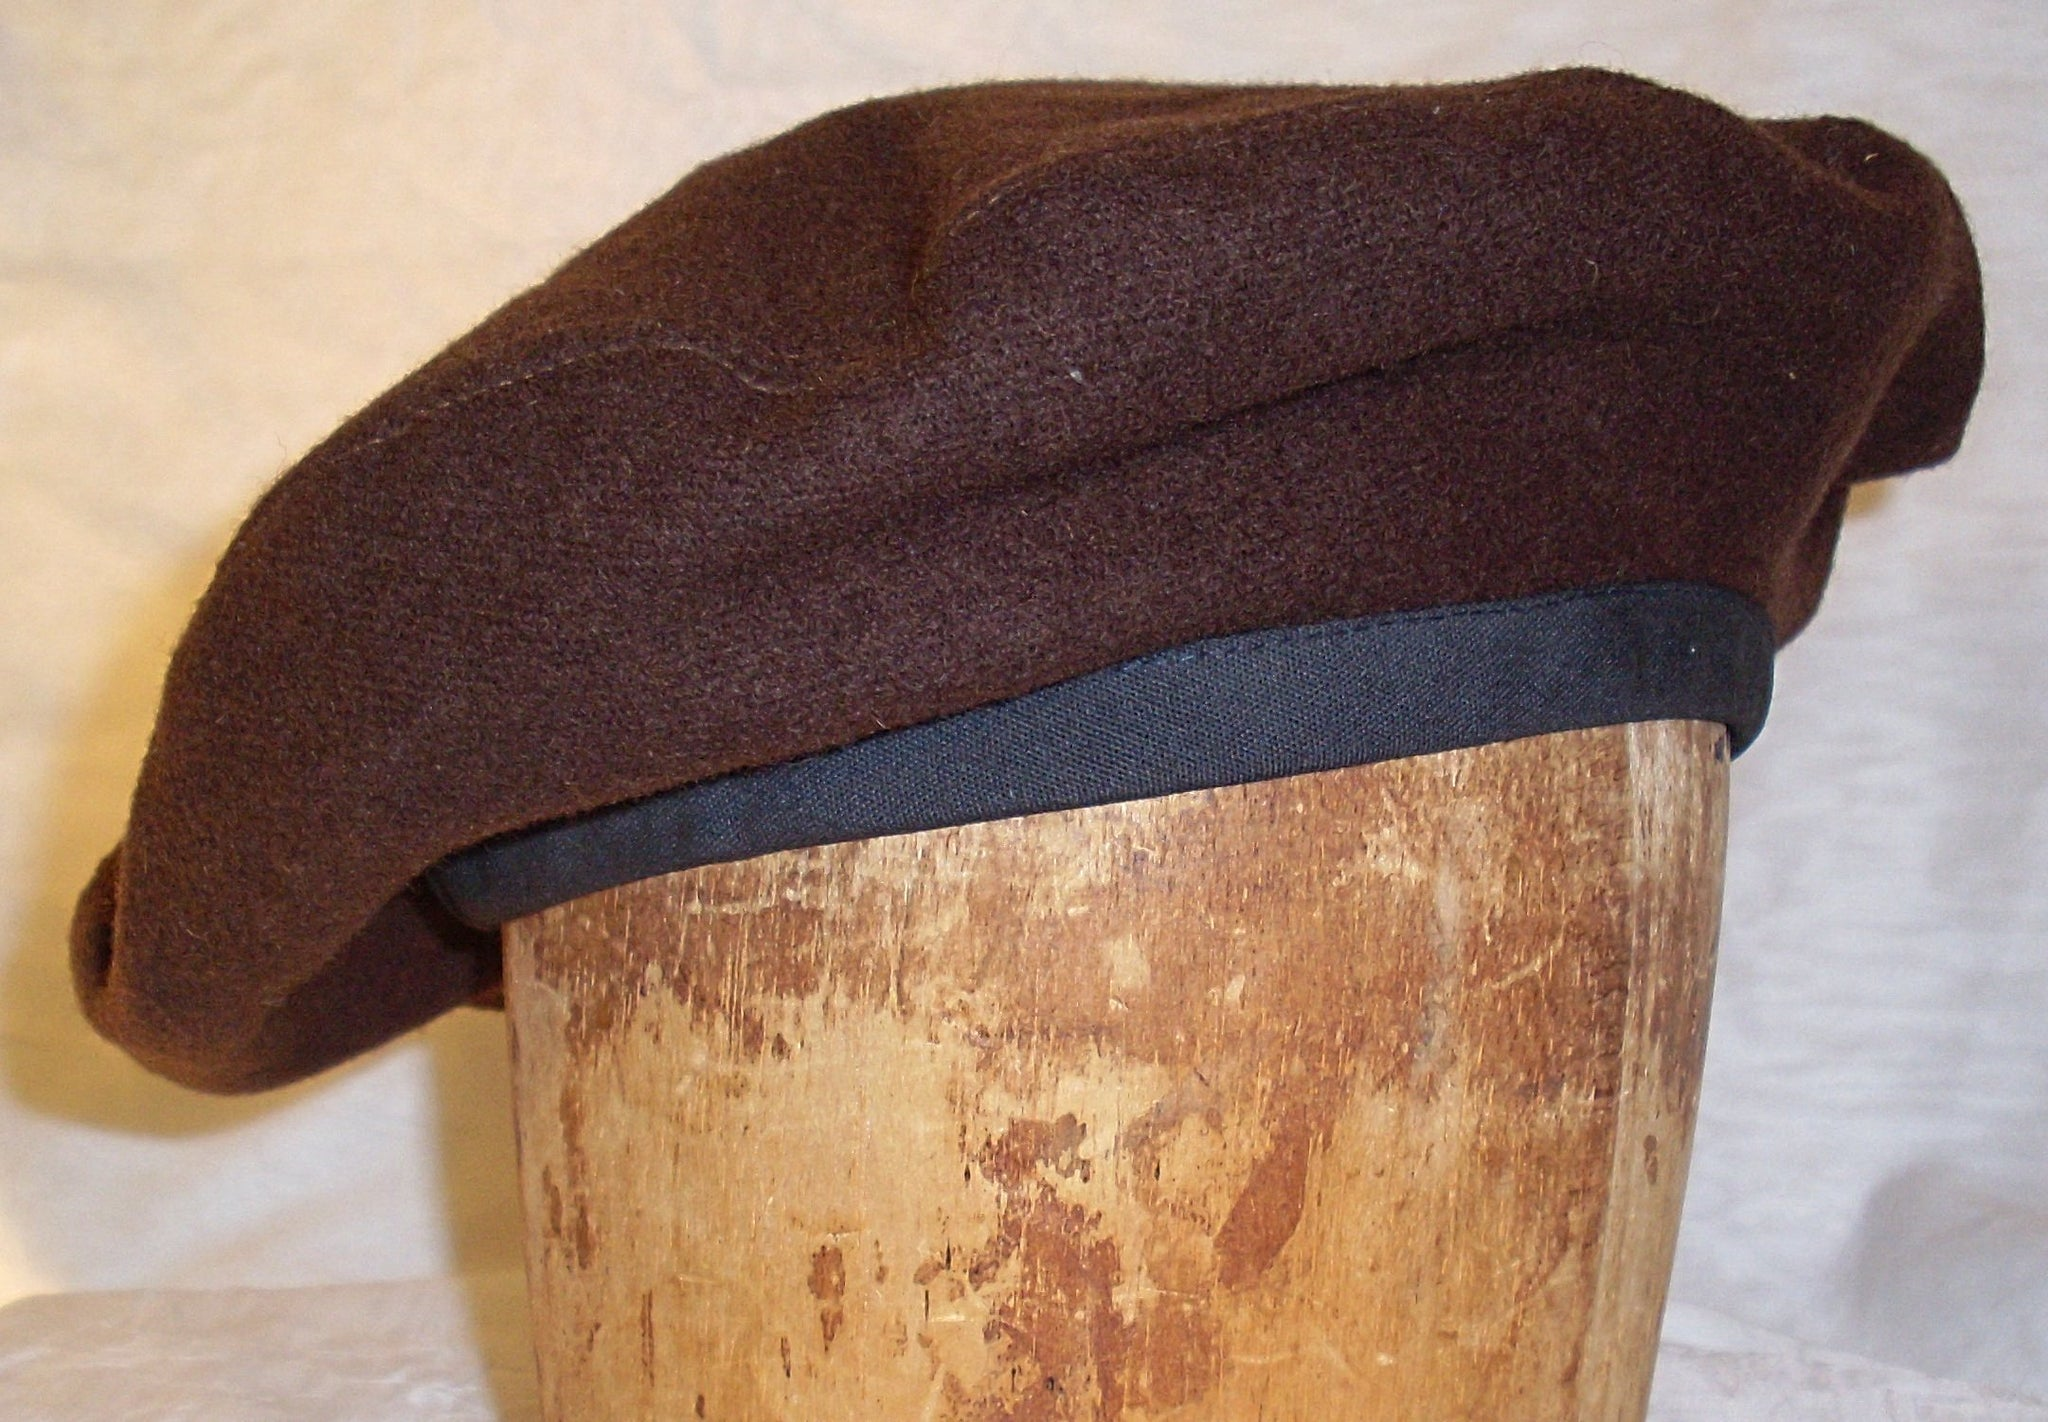 Scottish beret by White Pavilion, side view. Ideal Celtic headgear for Scottish and Irish wear; also for medieval and renaissance costumes and Roger's Rangers reenactment.